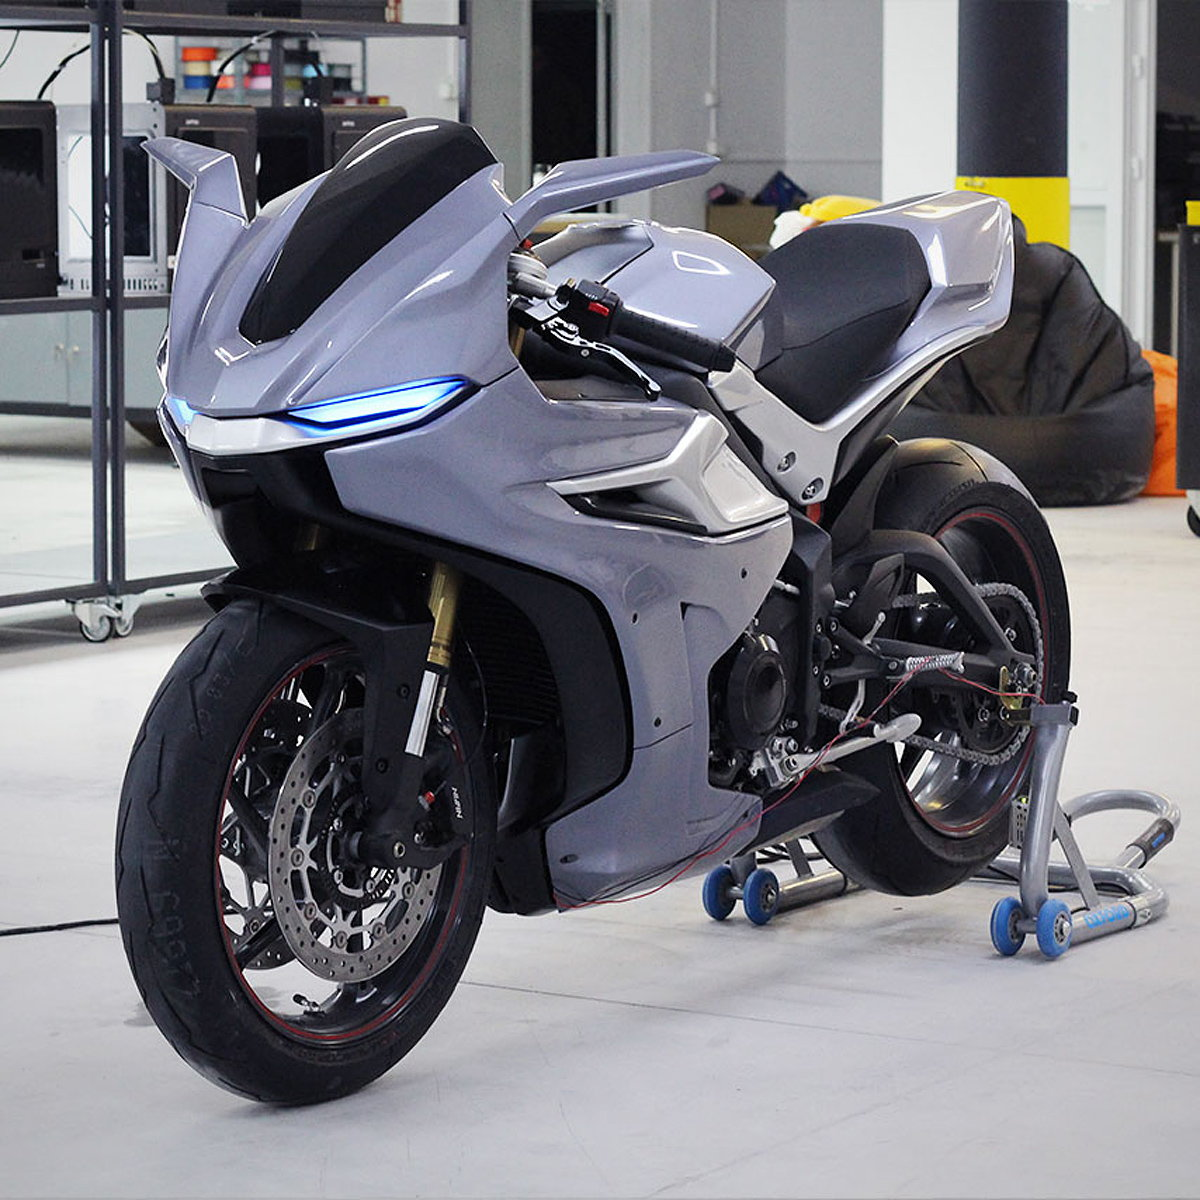 Czyzewski Design Unveils Motorcycle Prototype for Zortrax